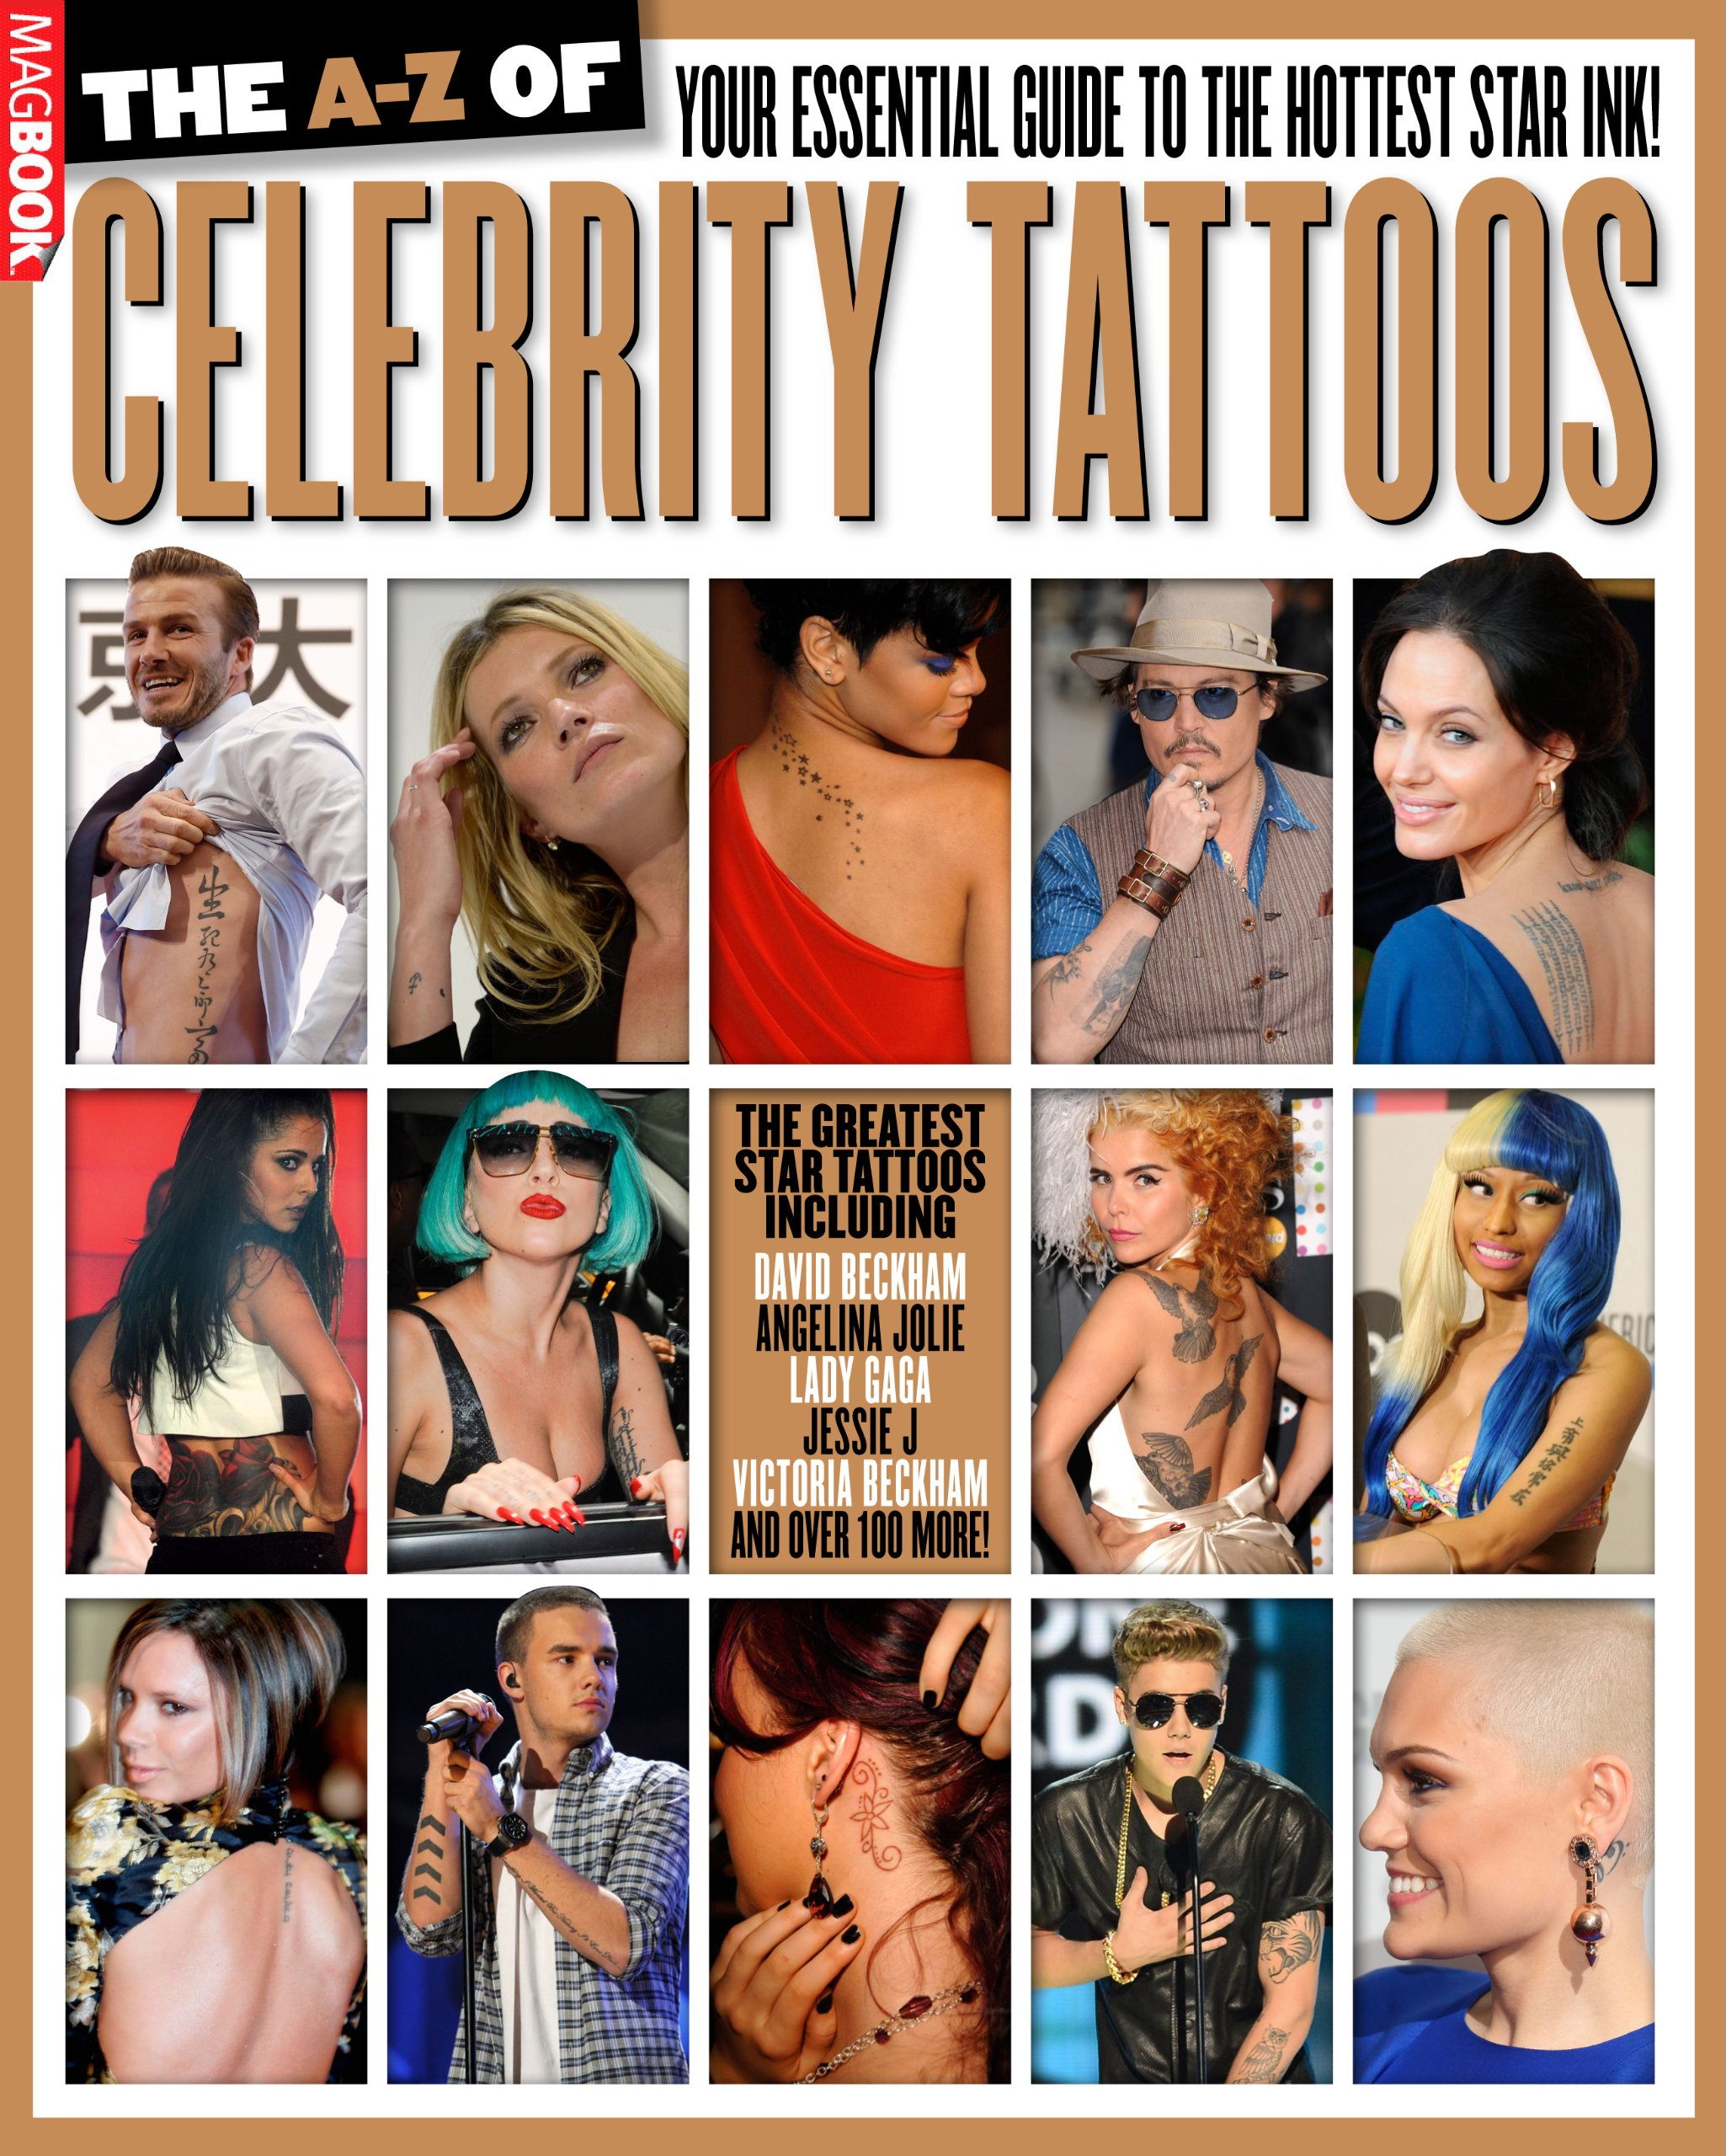 The A-Z of Celebrity Tattoos